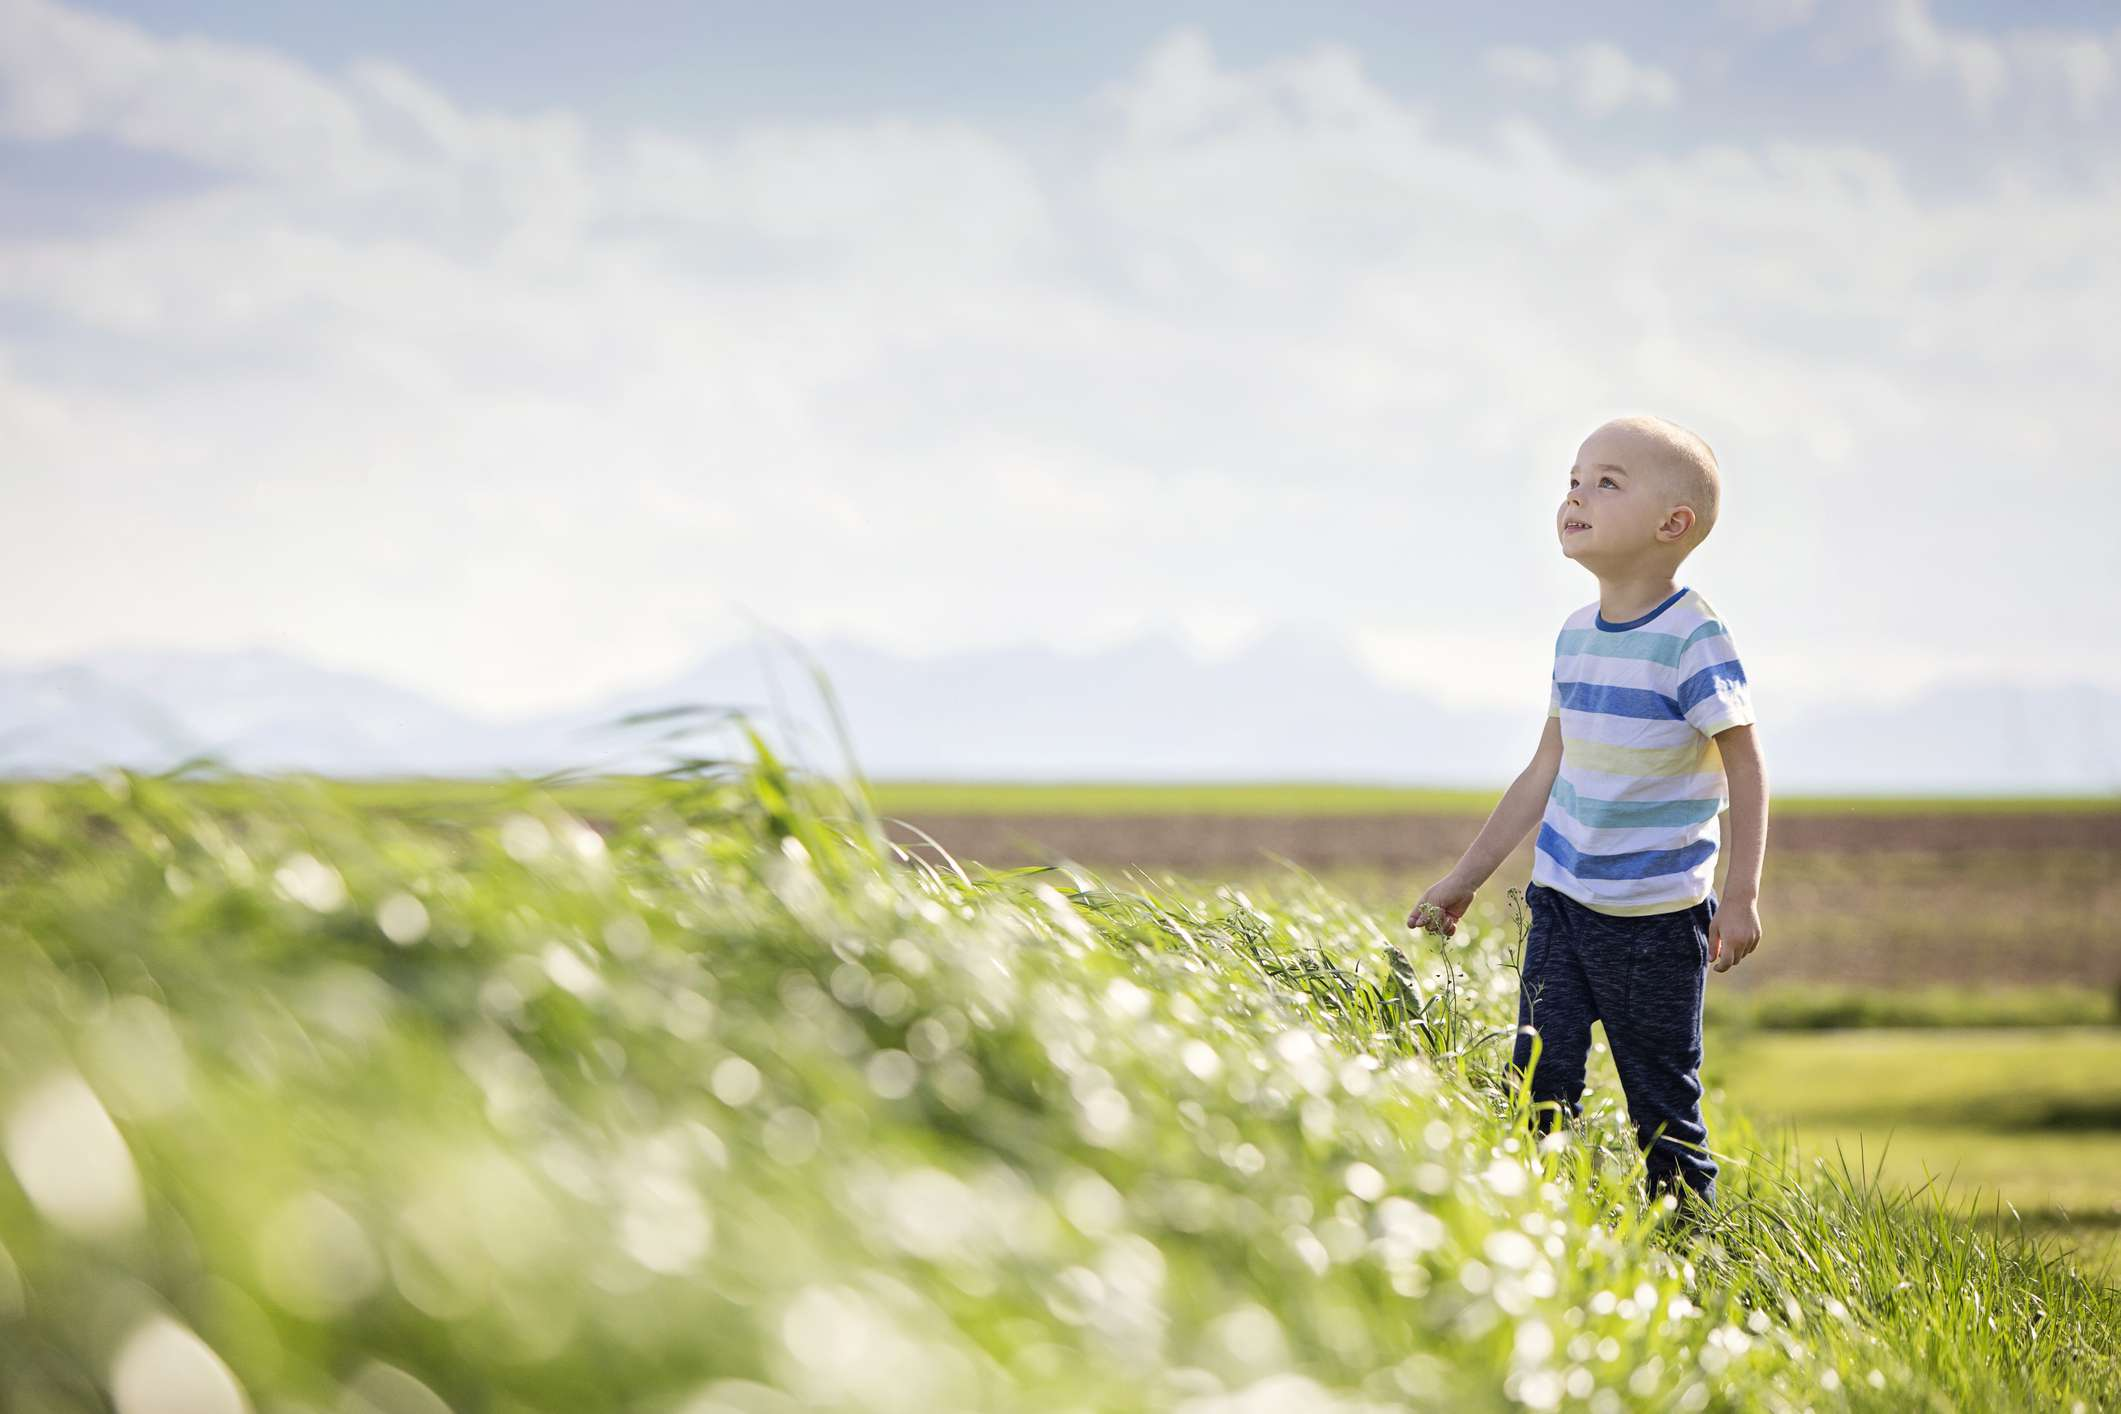 Child with Acute Lymphoblastic Leukemia standing in a field on a sunny day